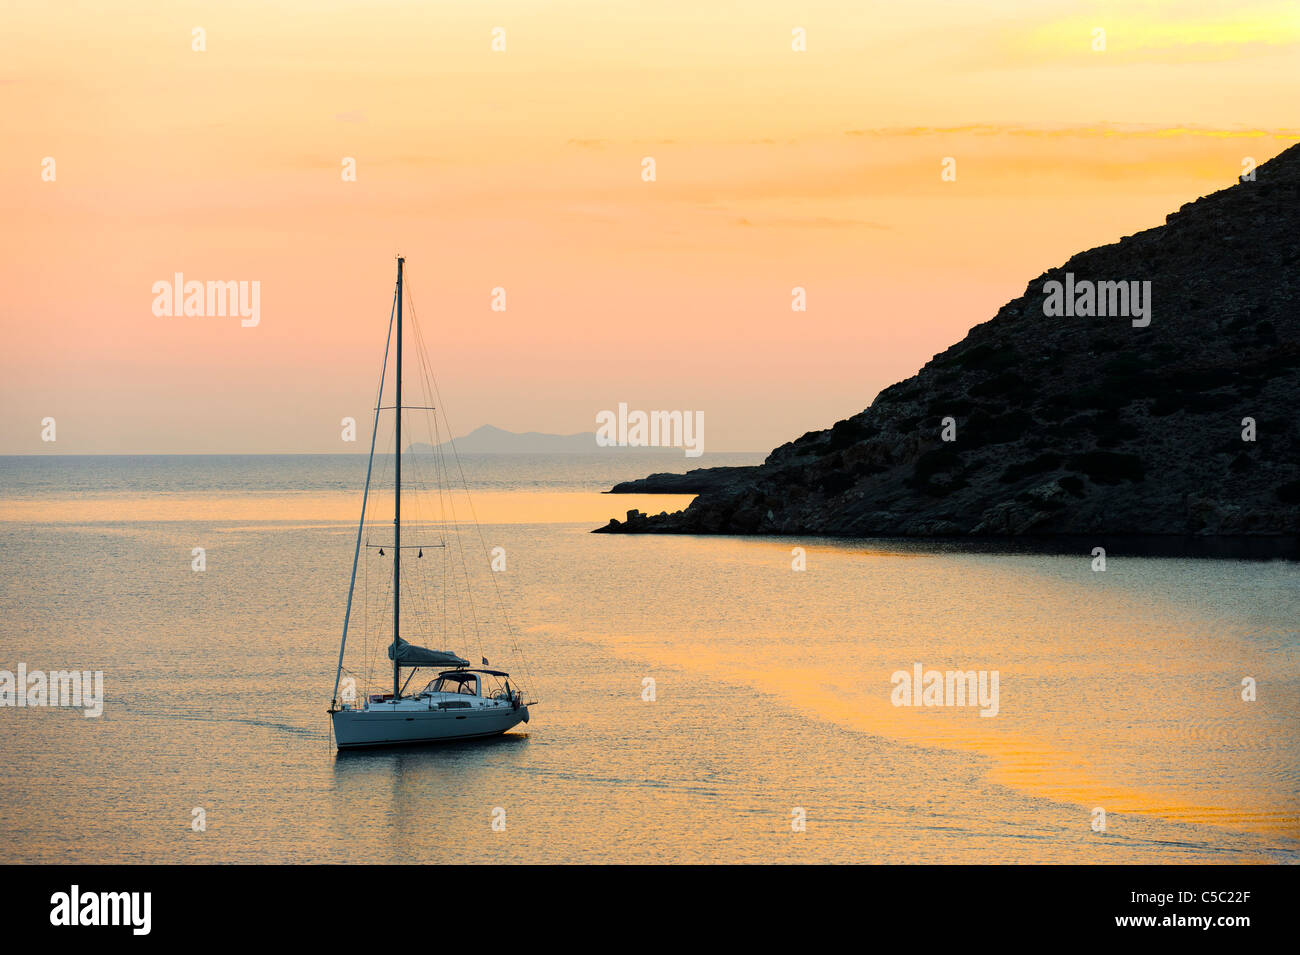 Sailboat anchored in shallow water in the peaceful sea at sunset - Stock Image